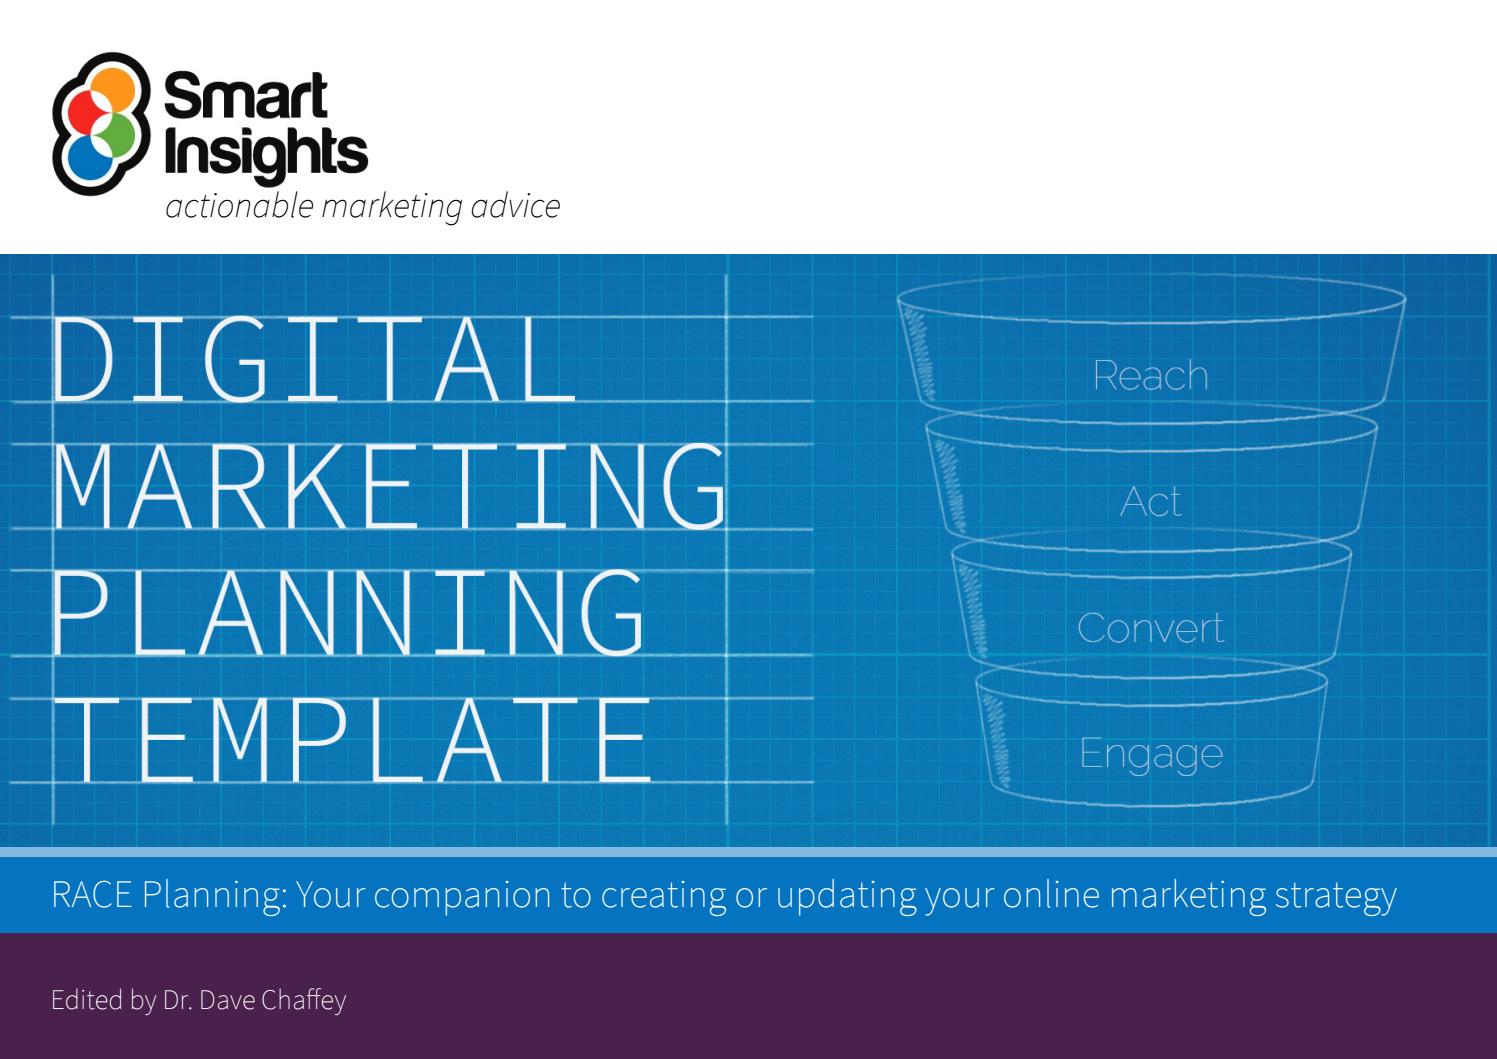 Learn how, plus use these free templates as a guide. Digital Marketing Plan Template Smart Insights By Re Schmolze Issuu